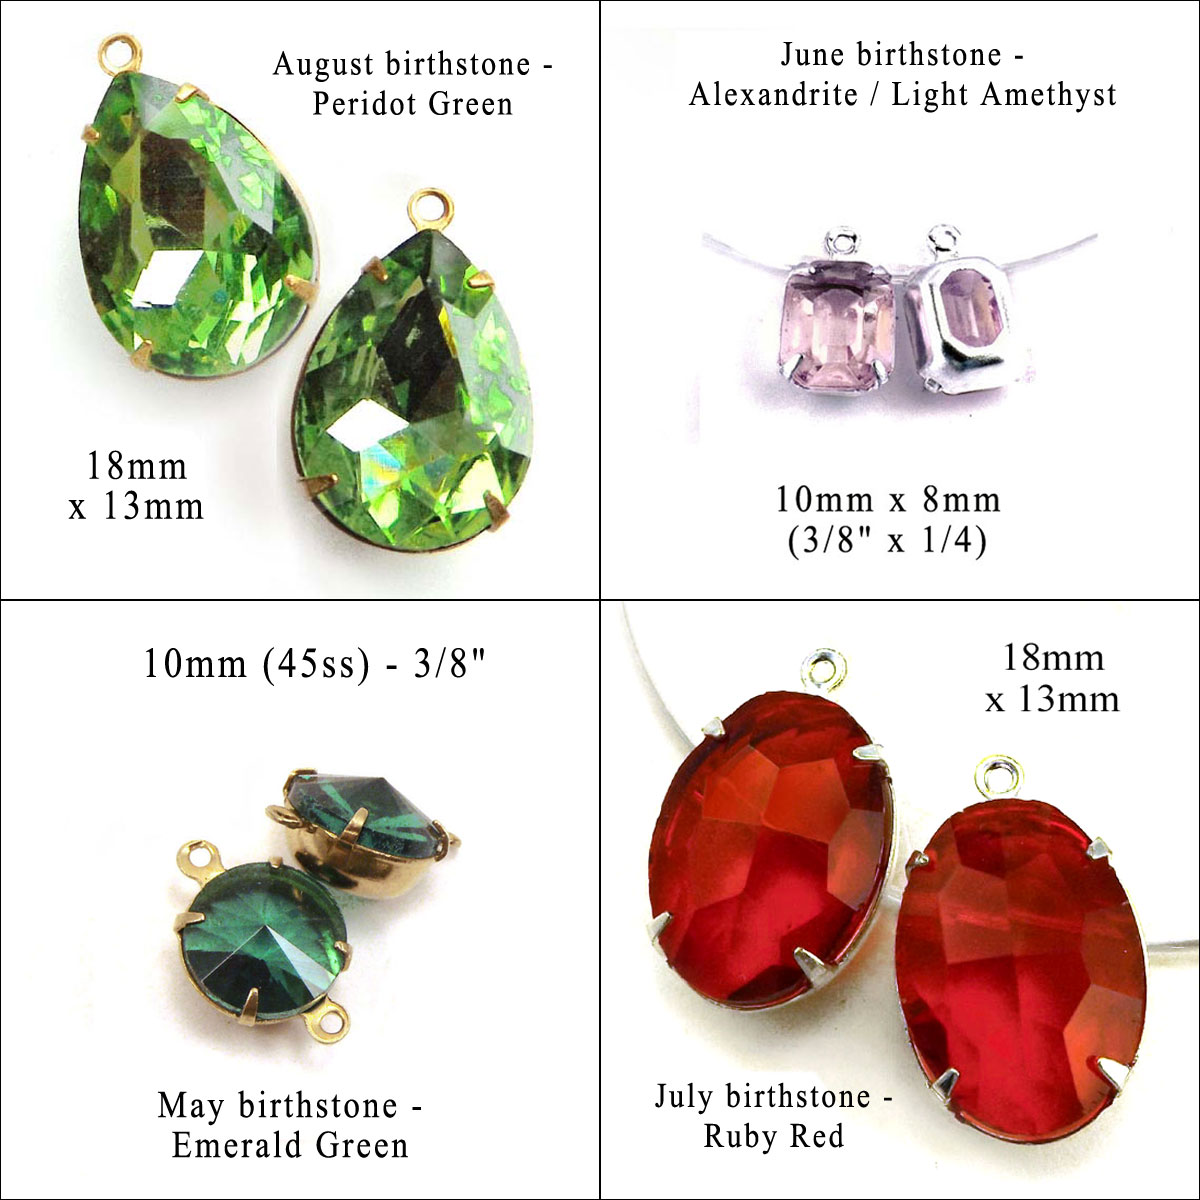 glass gems in birthstone colors for May through August